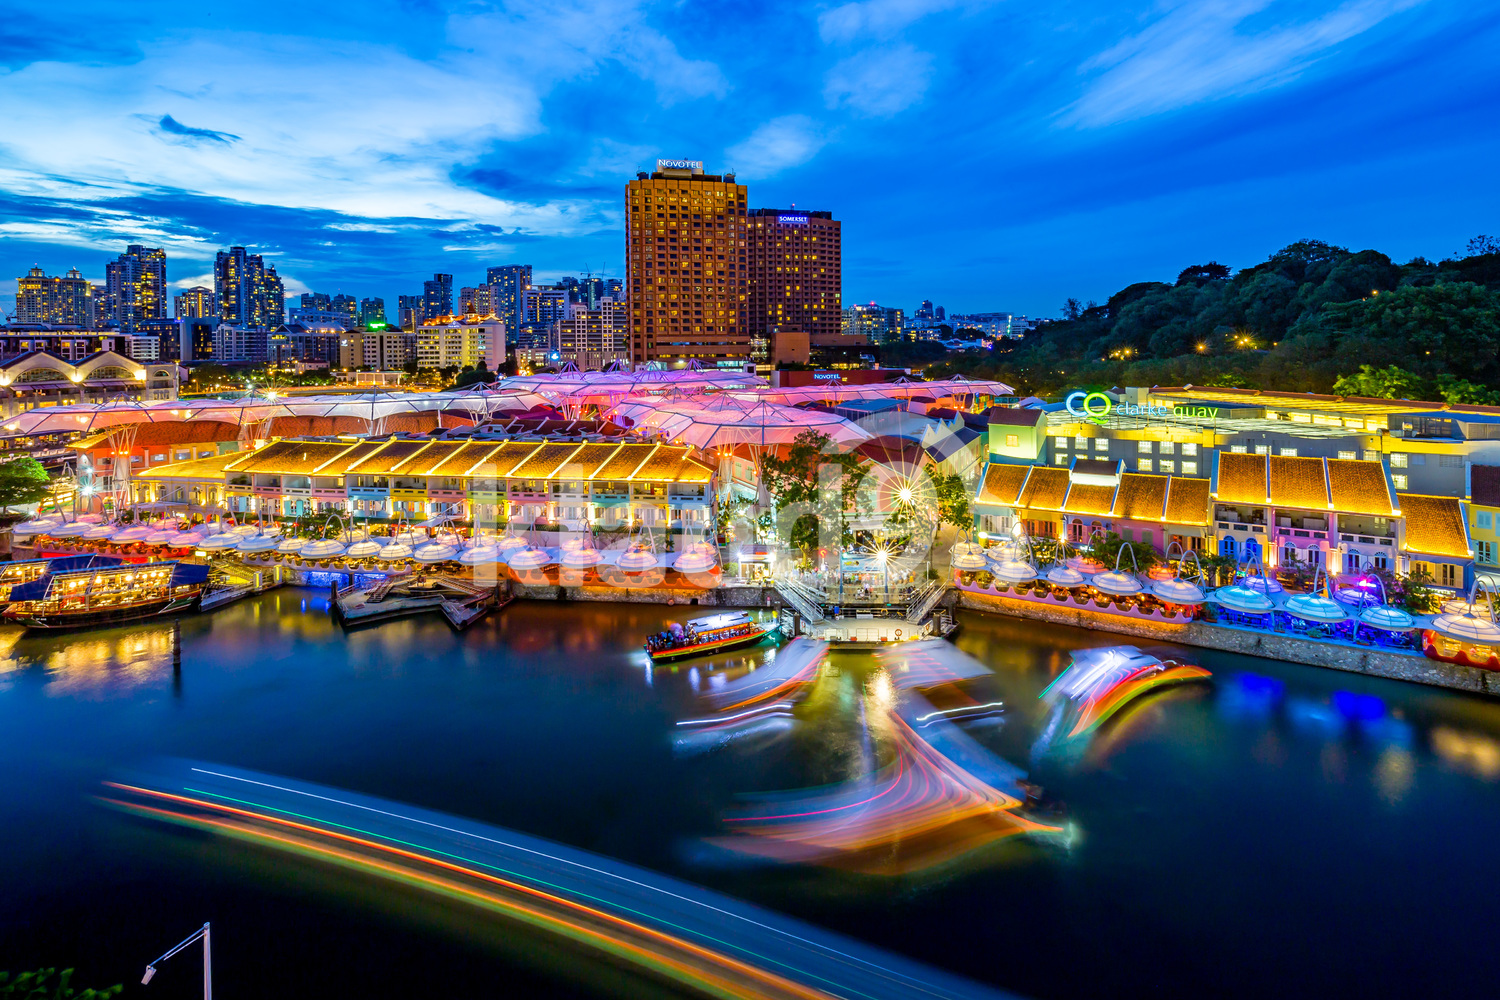 Colourful Clarke Quay